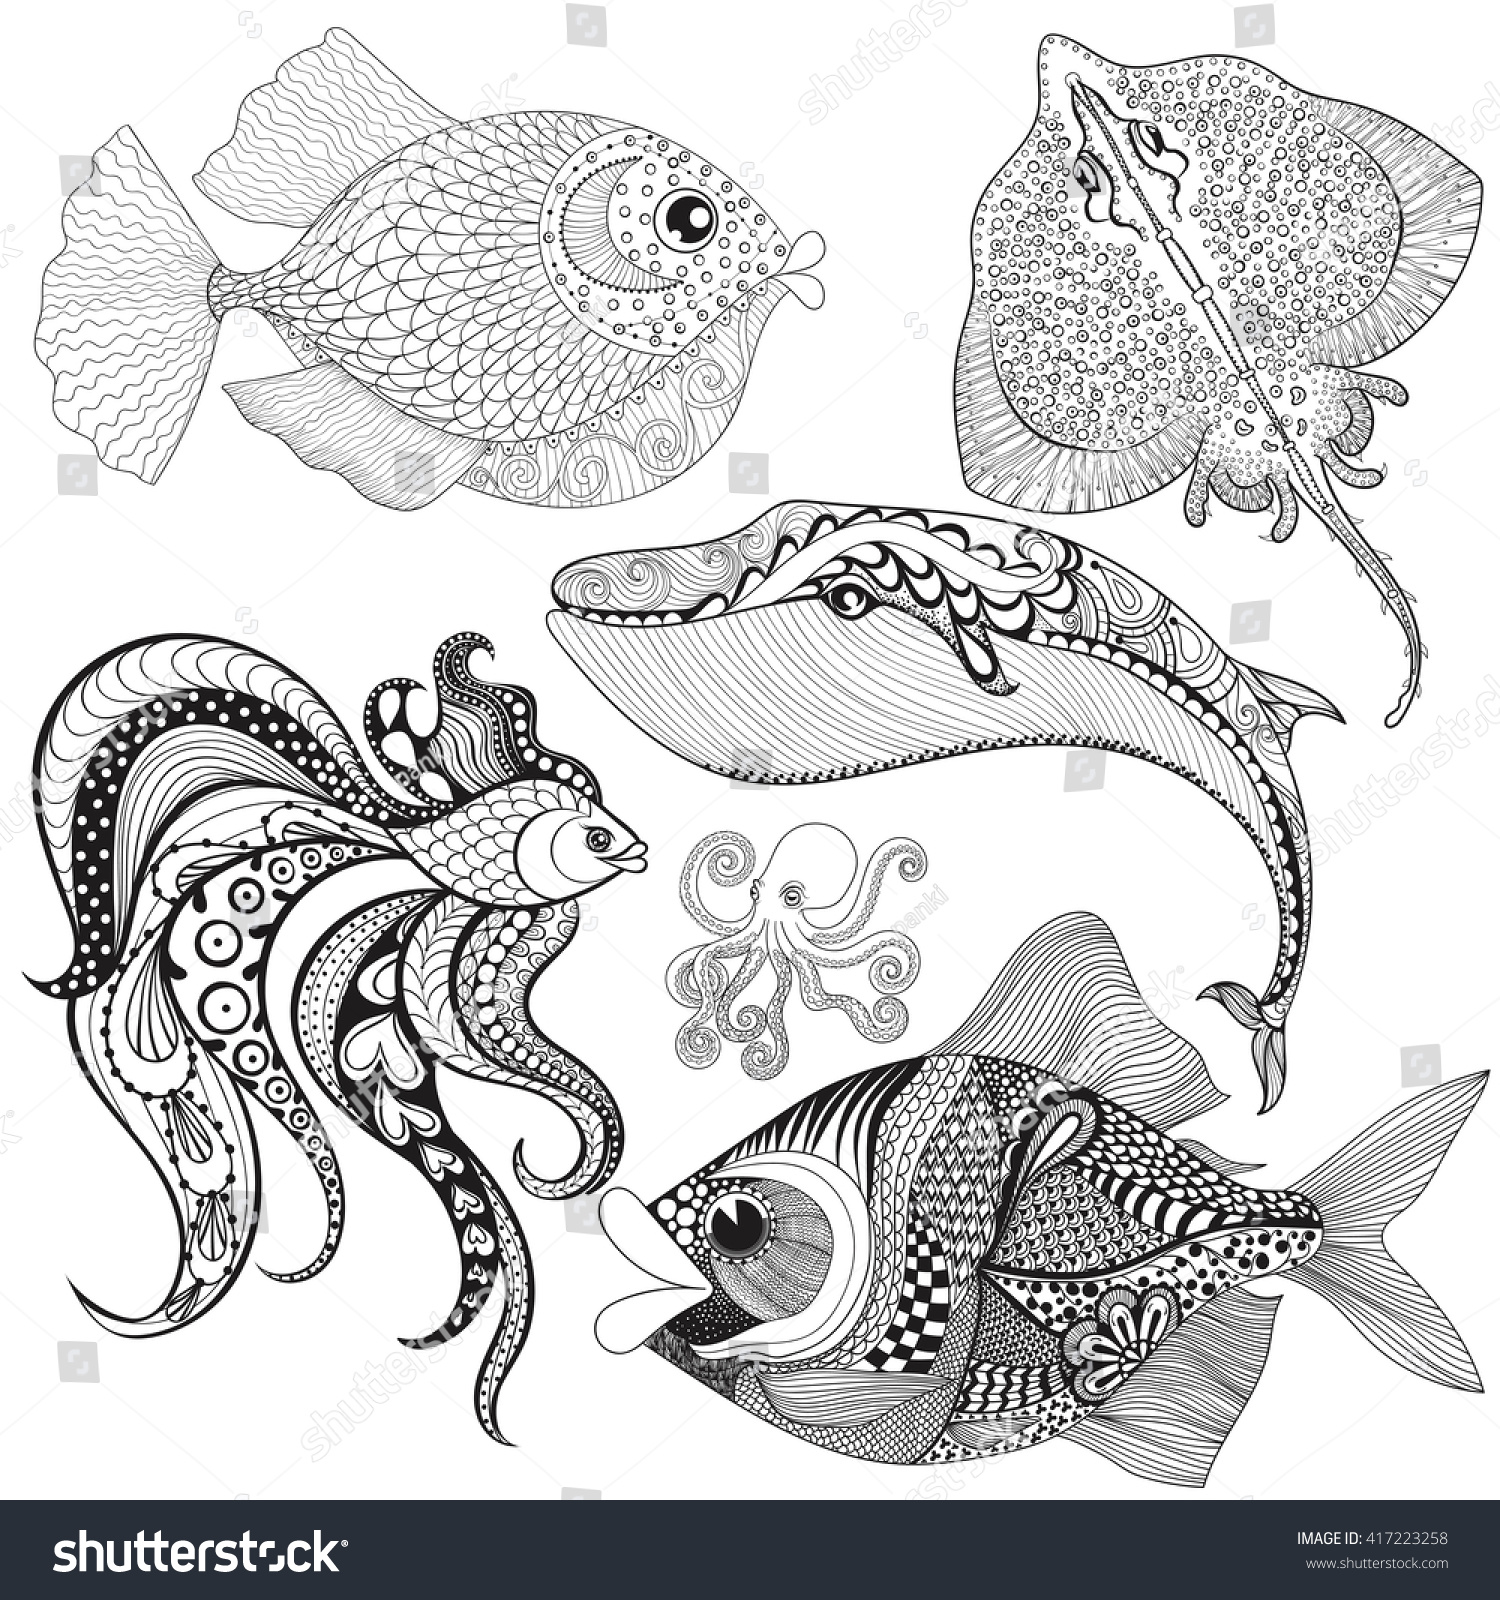 hand drawn zentangle fishes whale octopus stock vector 417223258